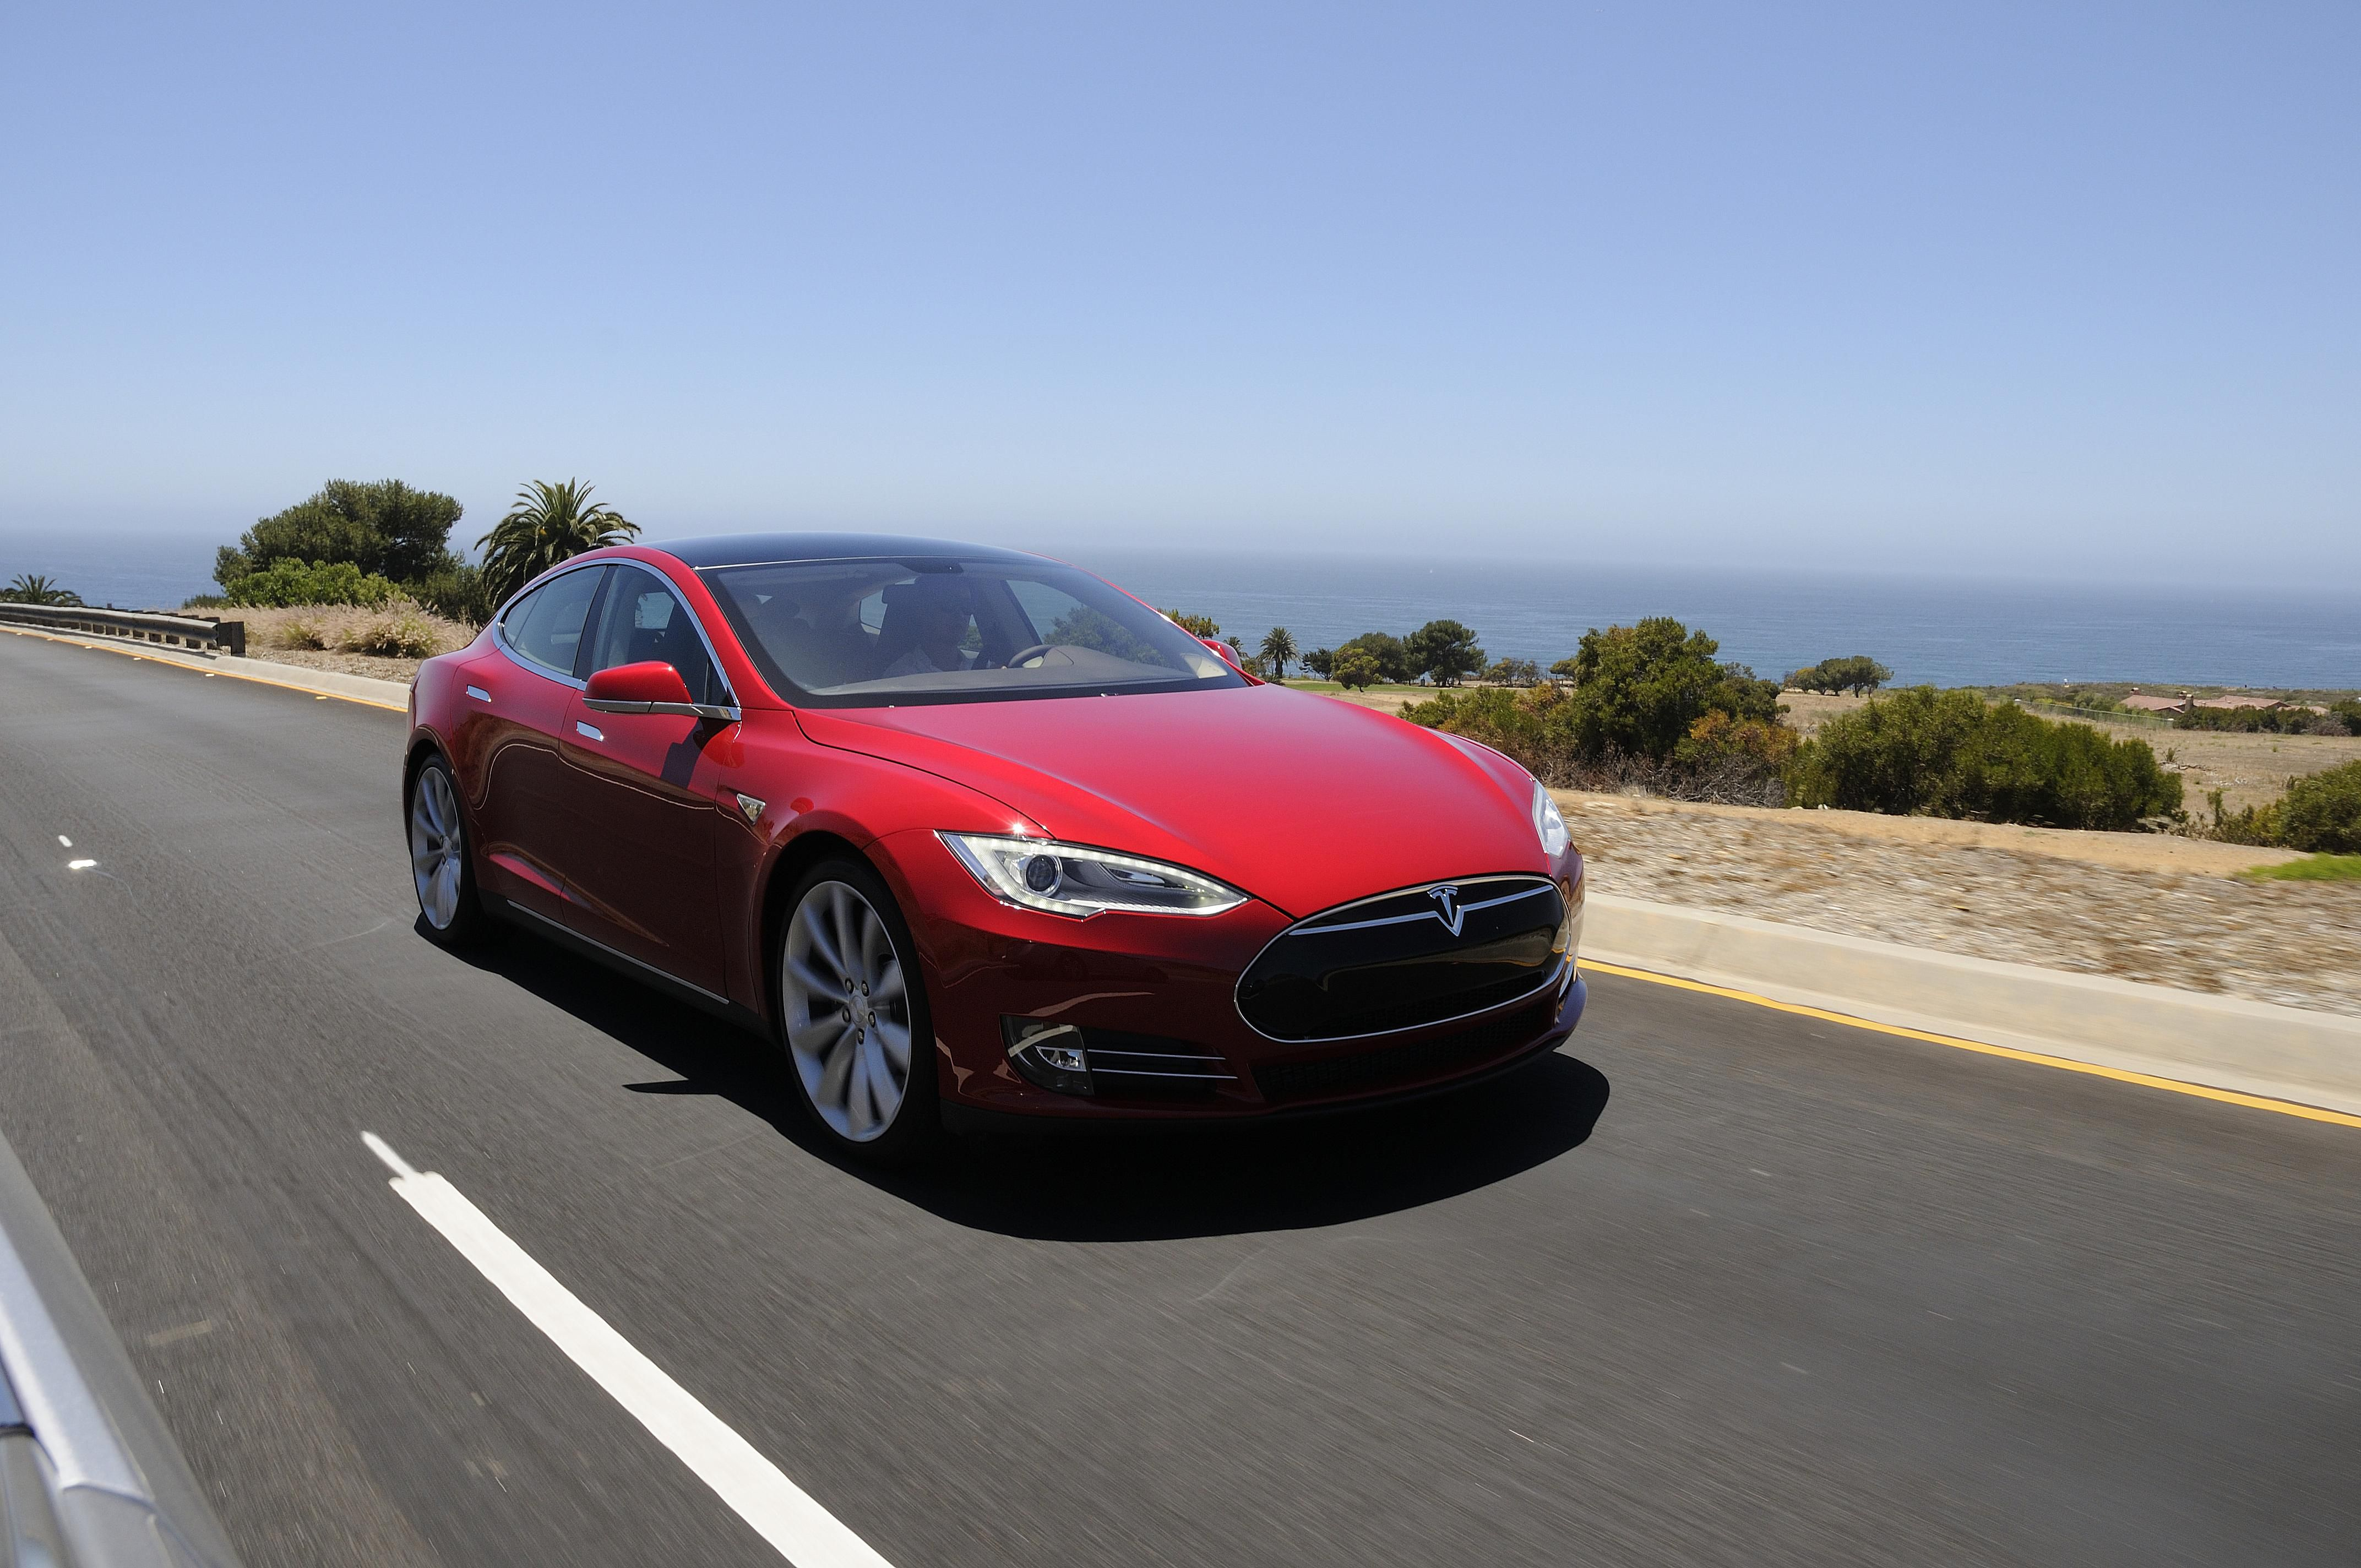 Tesla Earnings: What to Look for From TSLA